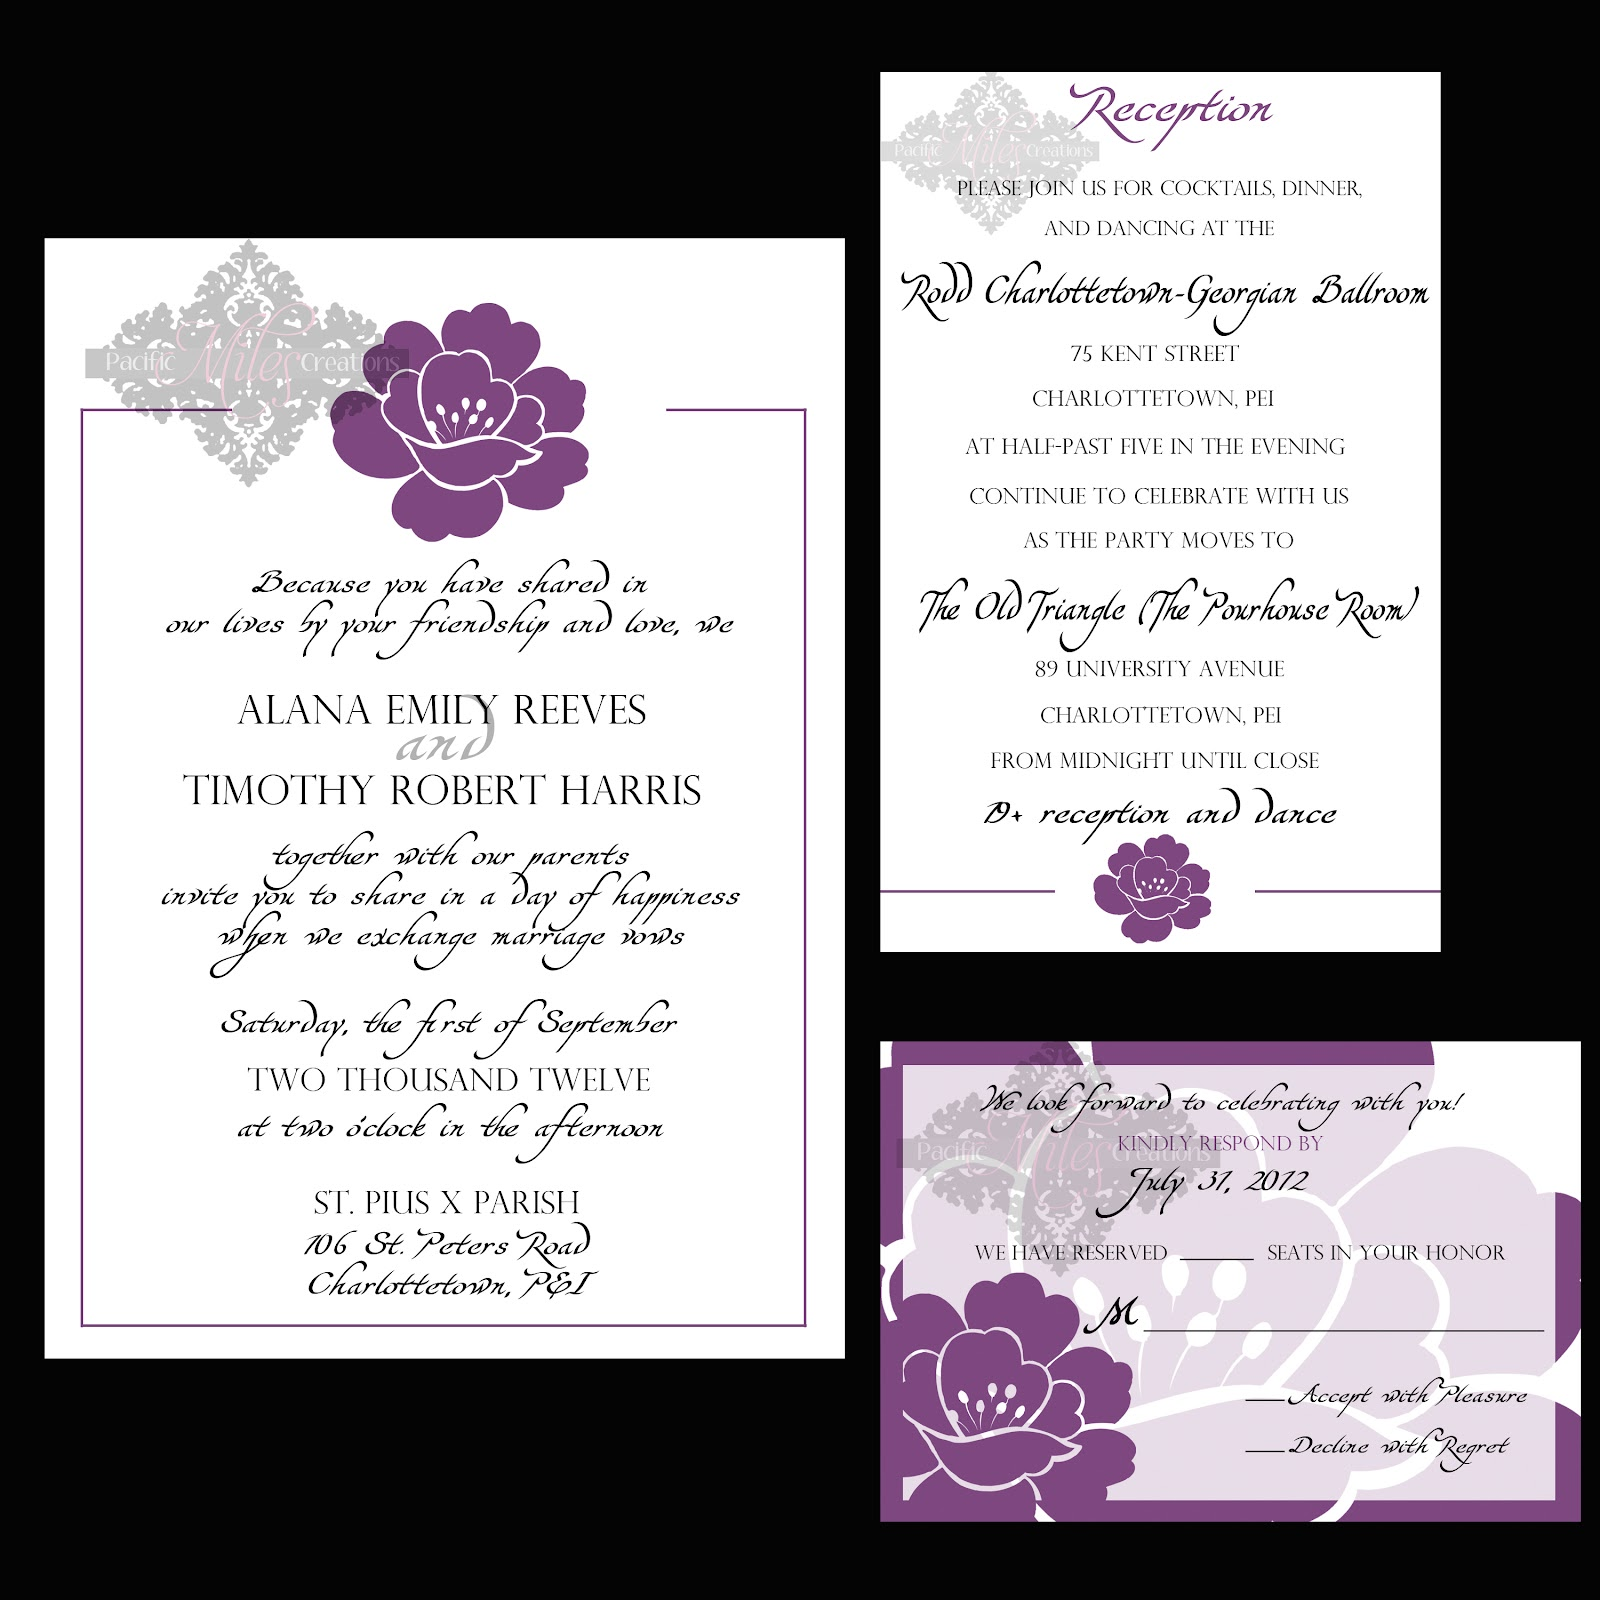 Wedding Invitations Samples: Contoh Informal Invitation Card For A Birthday Party